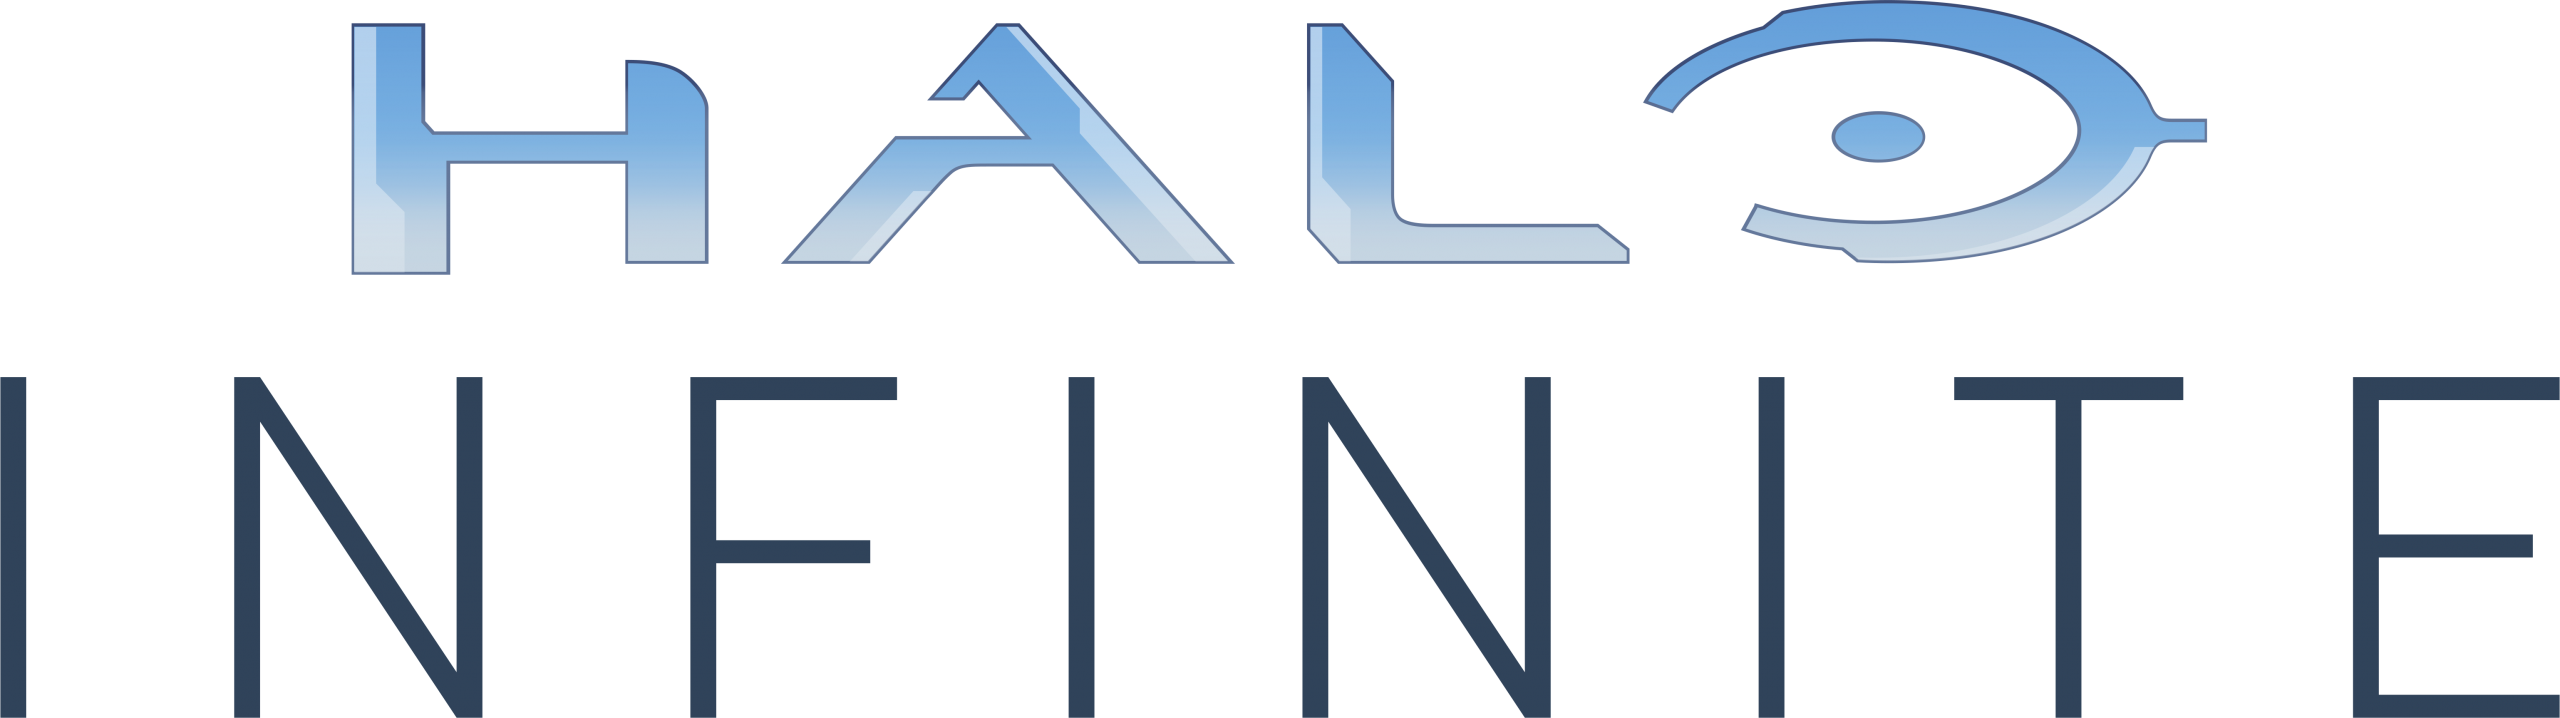 Halo Infinite: Most Expensive Game of All Time - Next Generation - Is it Worth 500 million dollars? 11 Top10.Digital